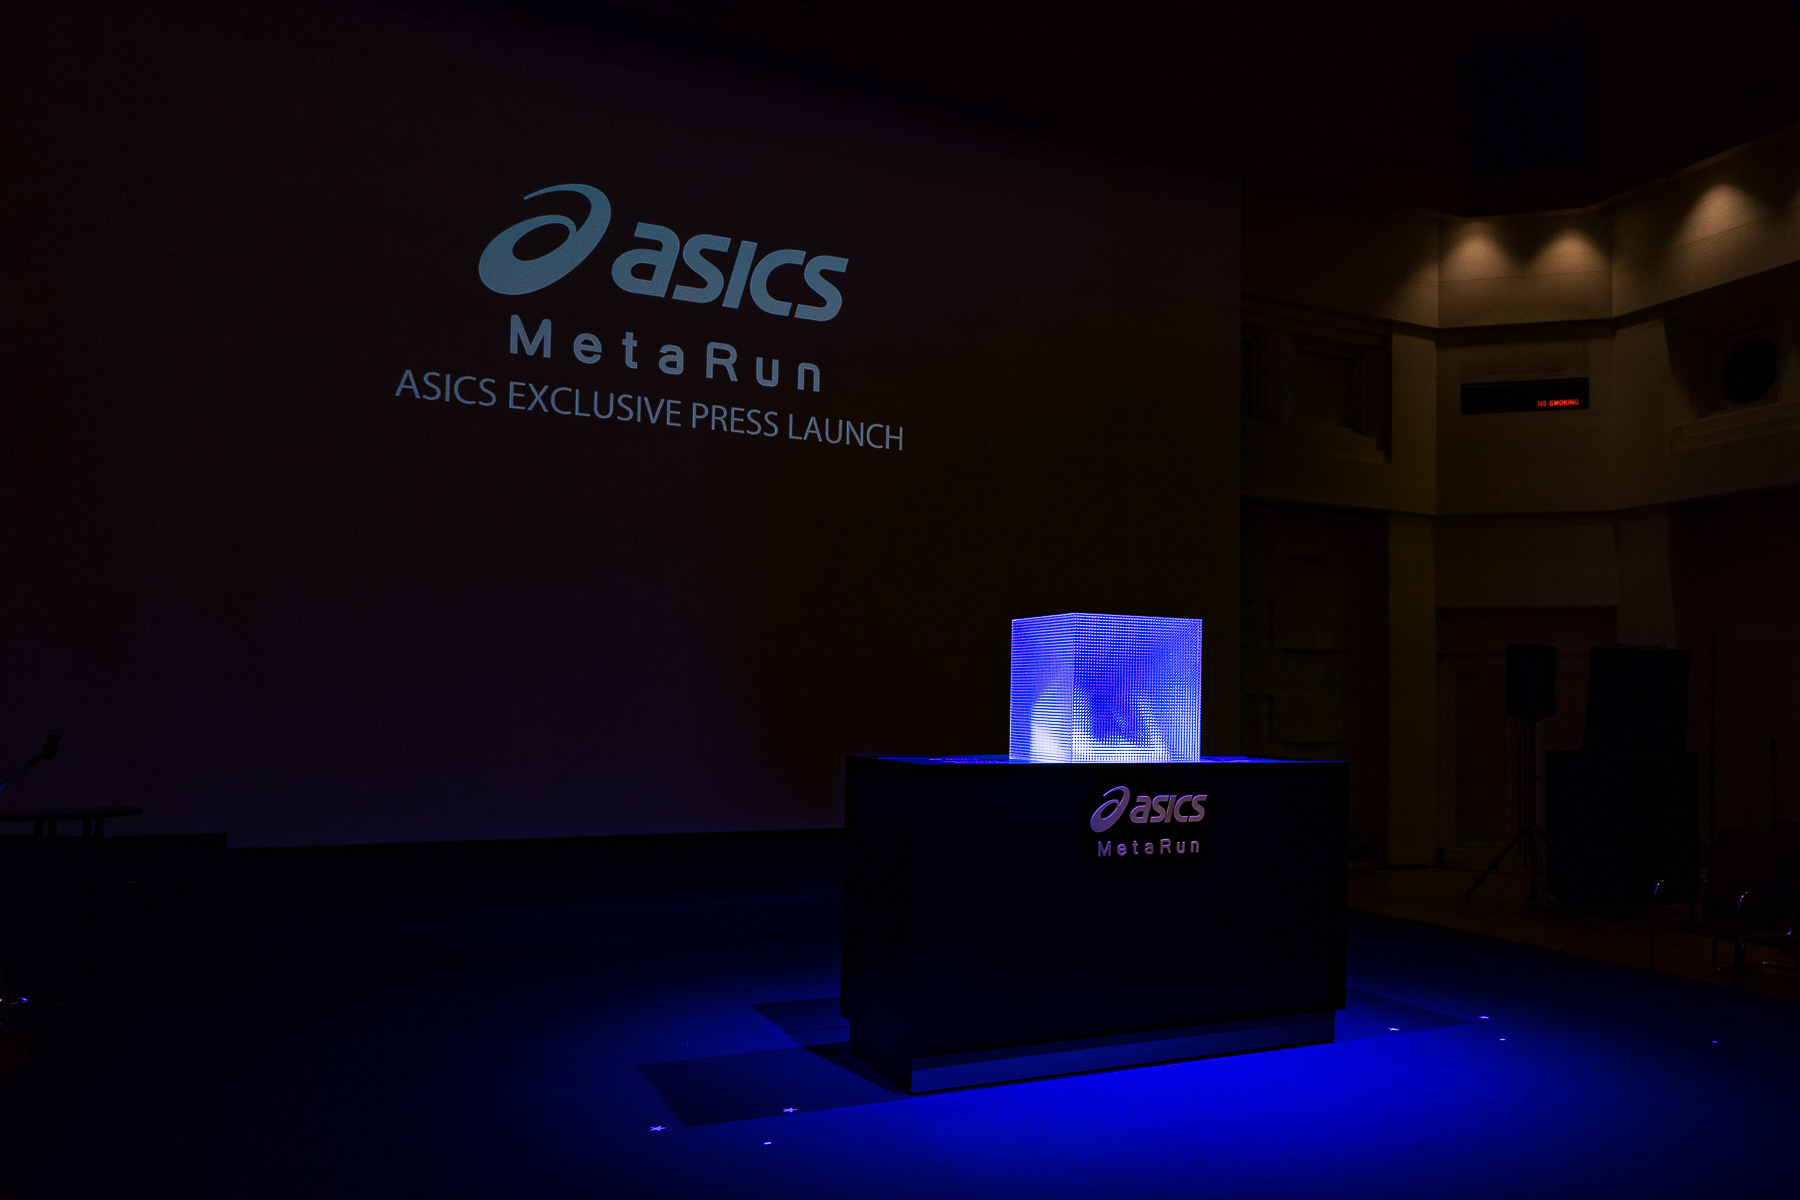 asics-metarun-event-2